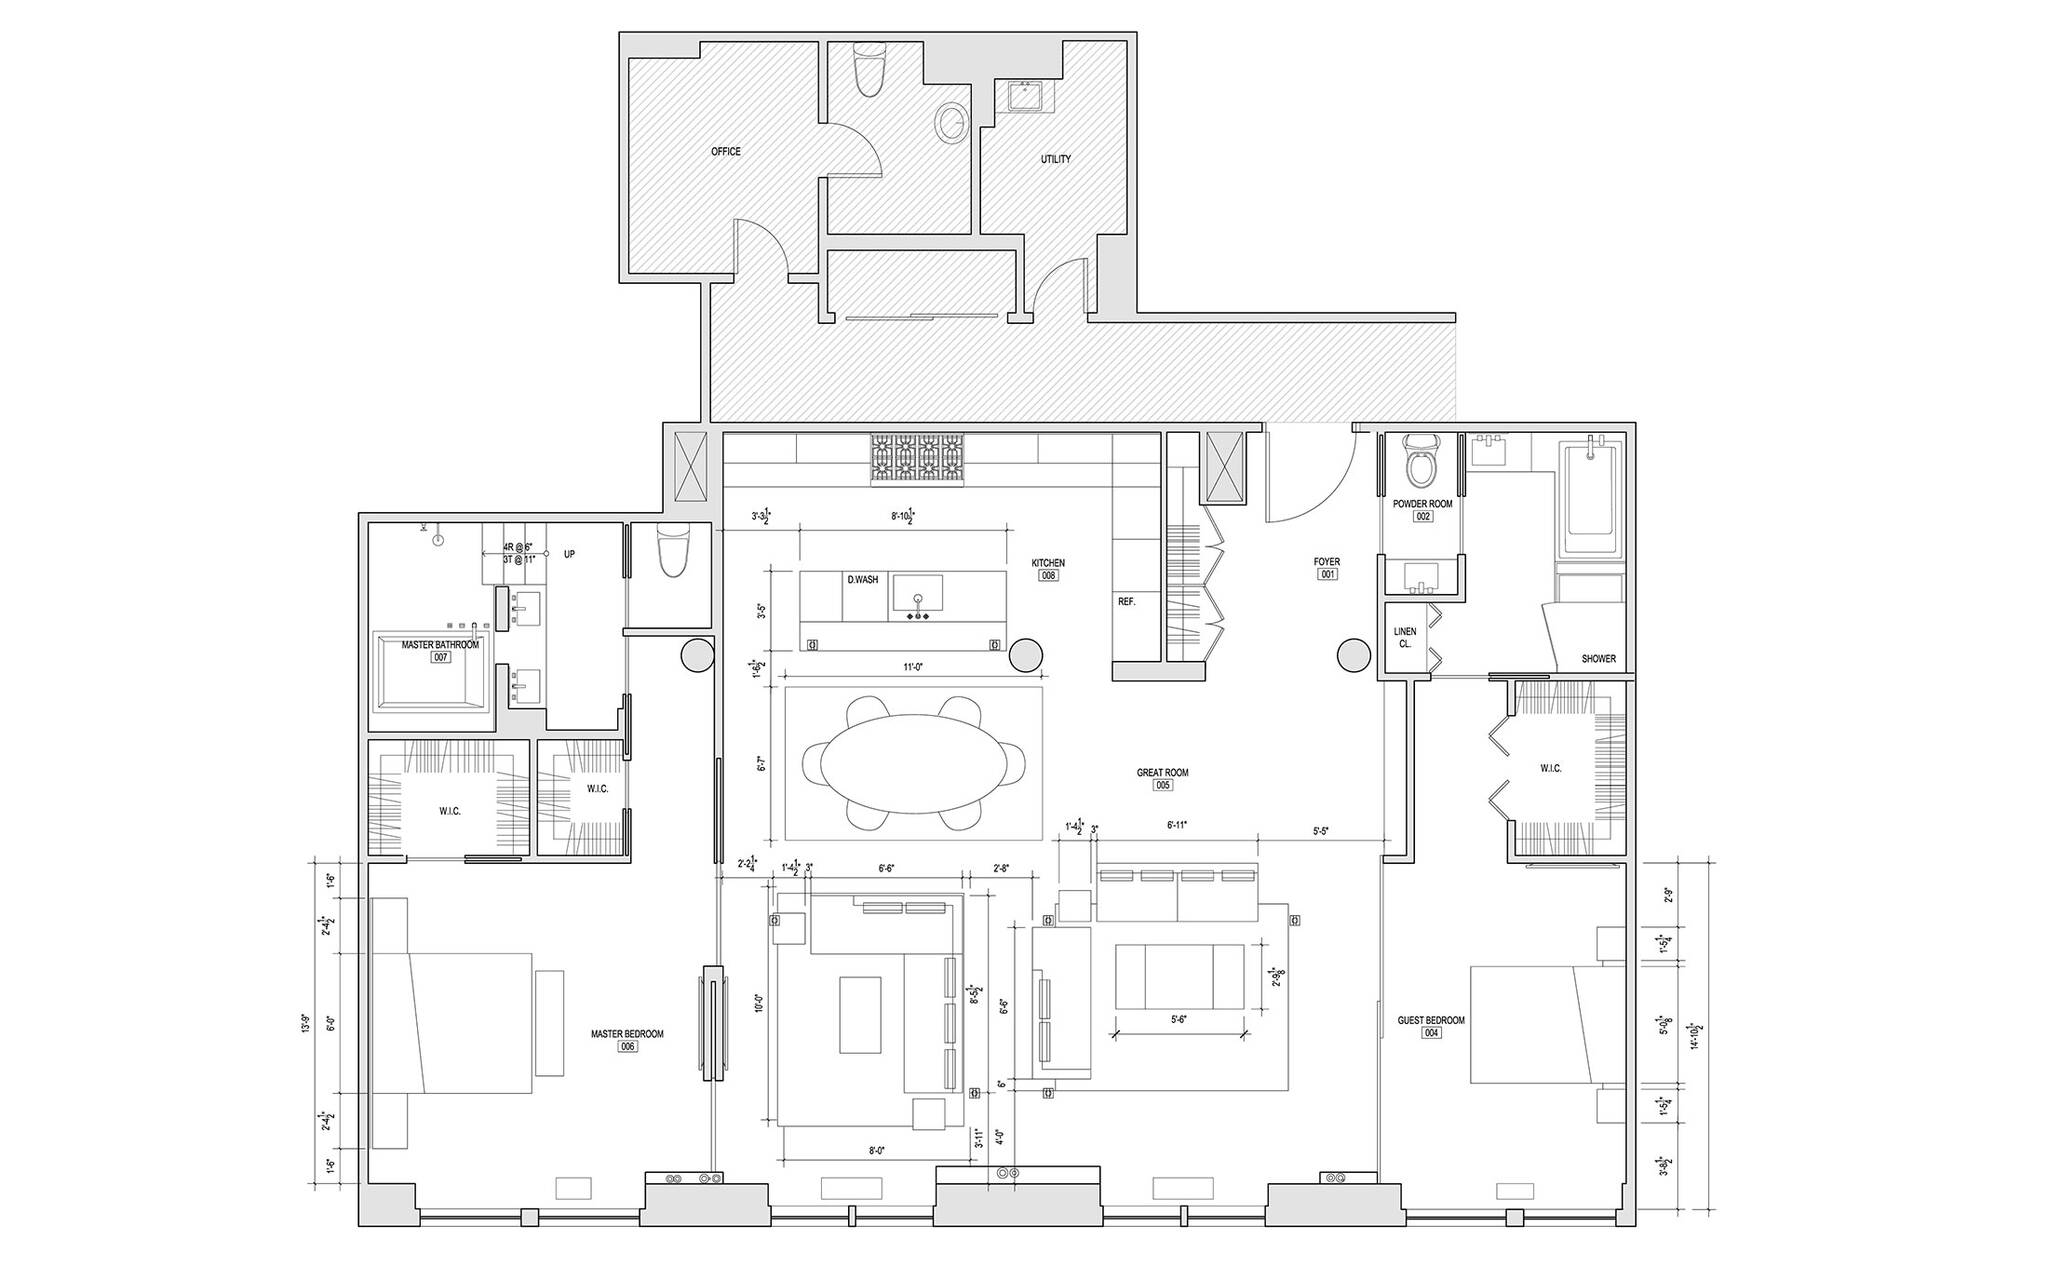 Floor plan of the loft renovation project in Union Square, New York City designed by the architecture studio Danny Forster & Architecture